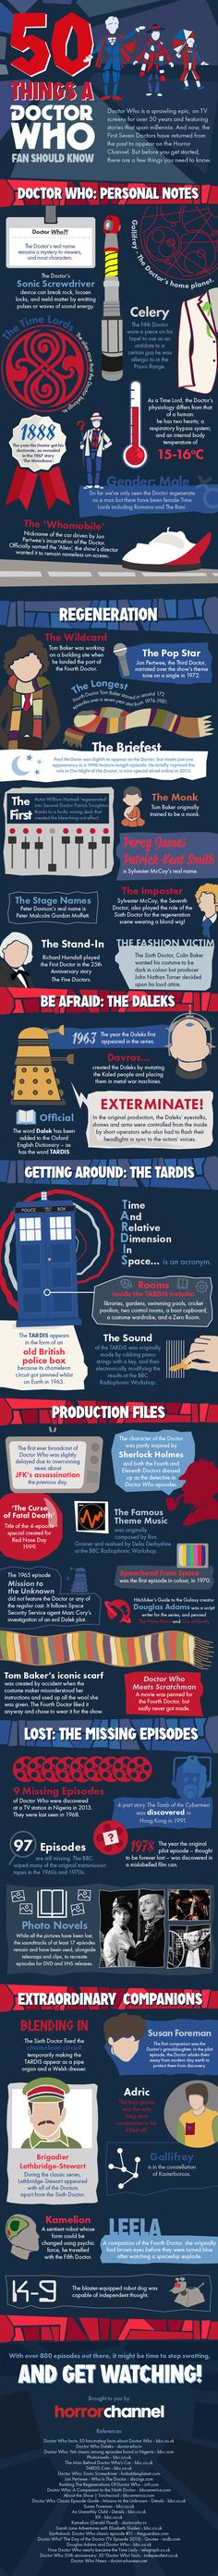 50 #DoctorWho facts every #Whovian should know!